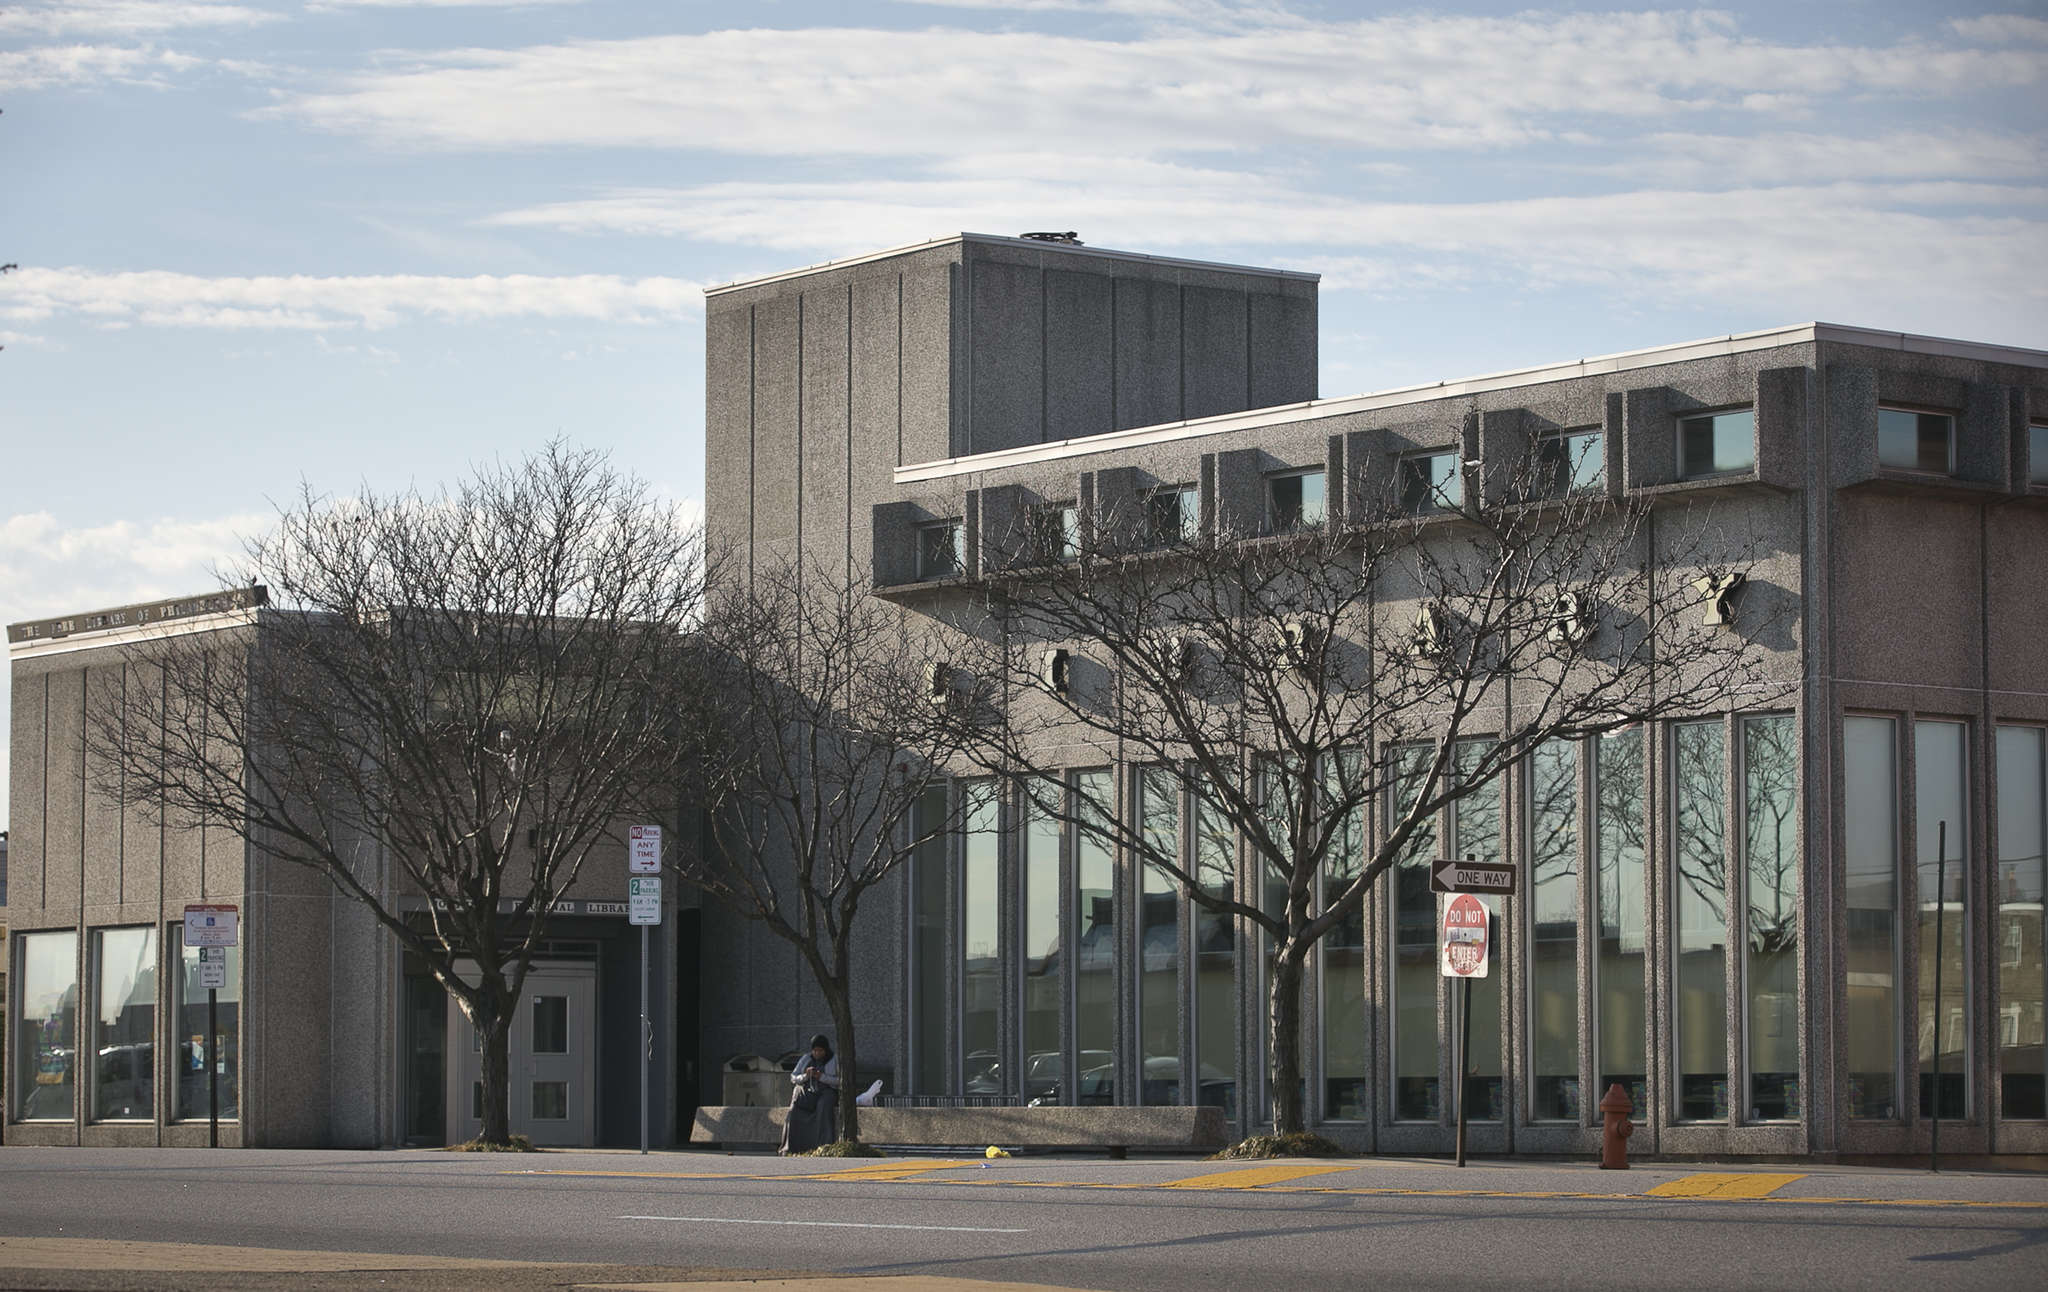 The Northeast Regional Library on Cottman Avenue opened in 1963. It´s the work of Geddes Brecher Qualls Cunningham, in a style then called Brutalism, but now called Heroic.